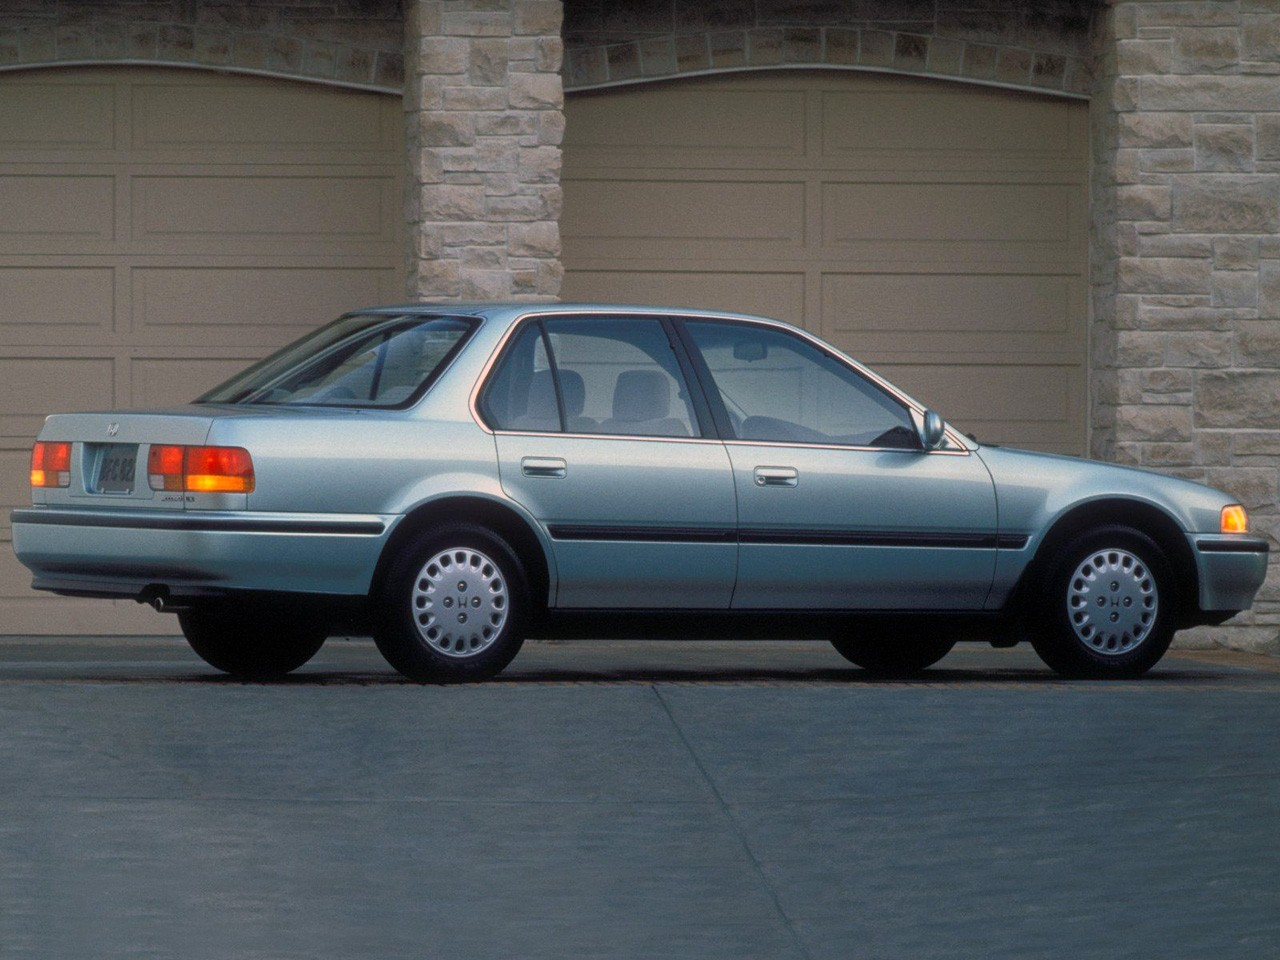 New Honda Accord Sedan >> HONDA Accord 4 Doors - 1989, 1990, 1991, 1992, 1993 - autoevolution